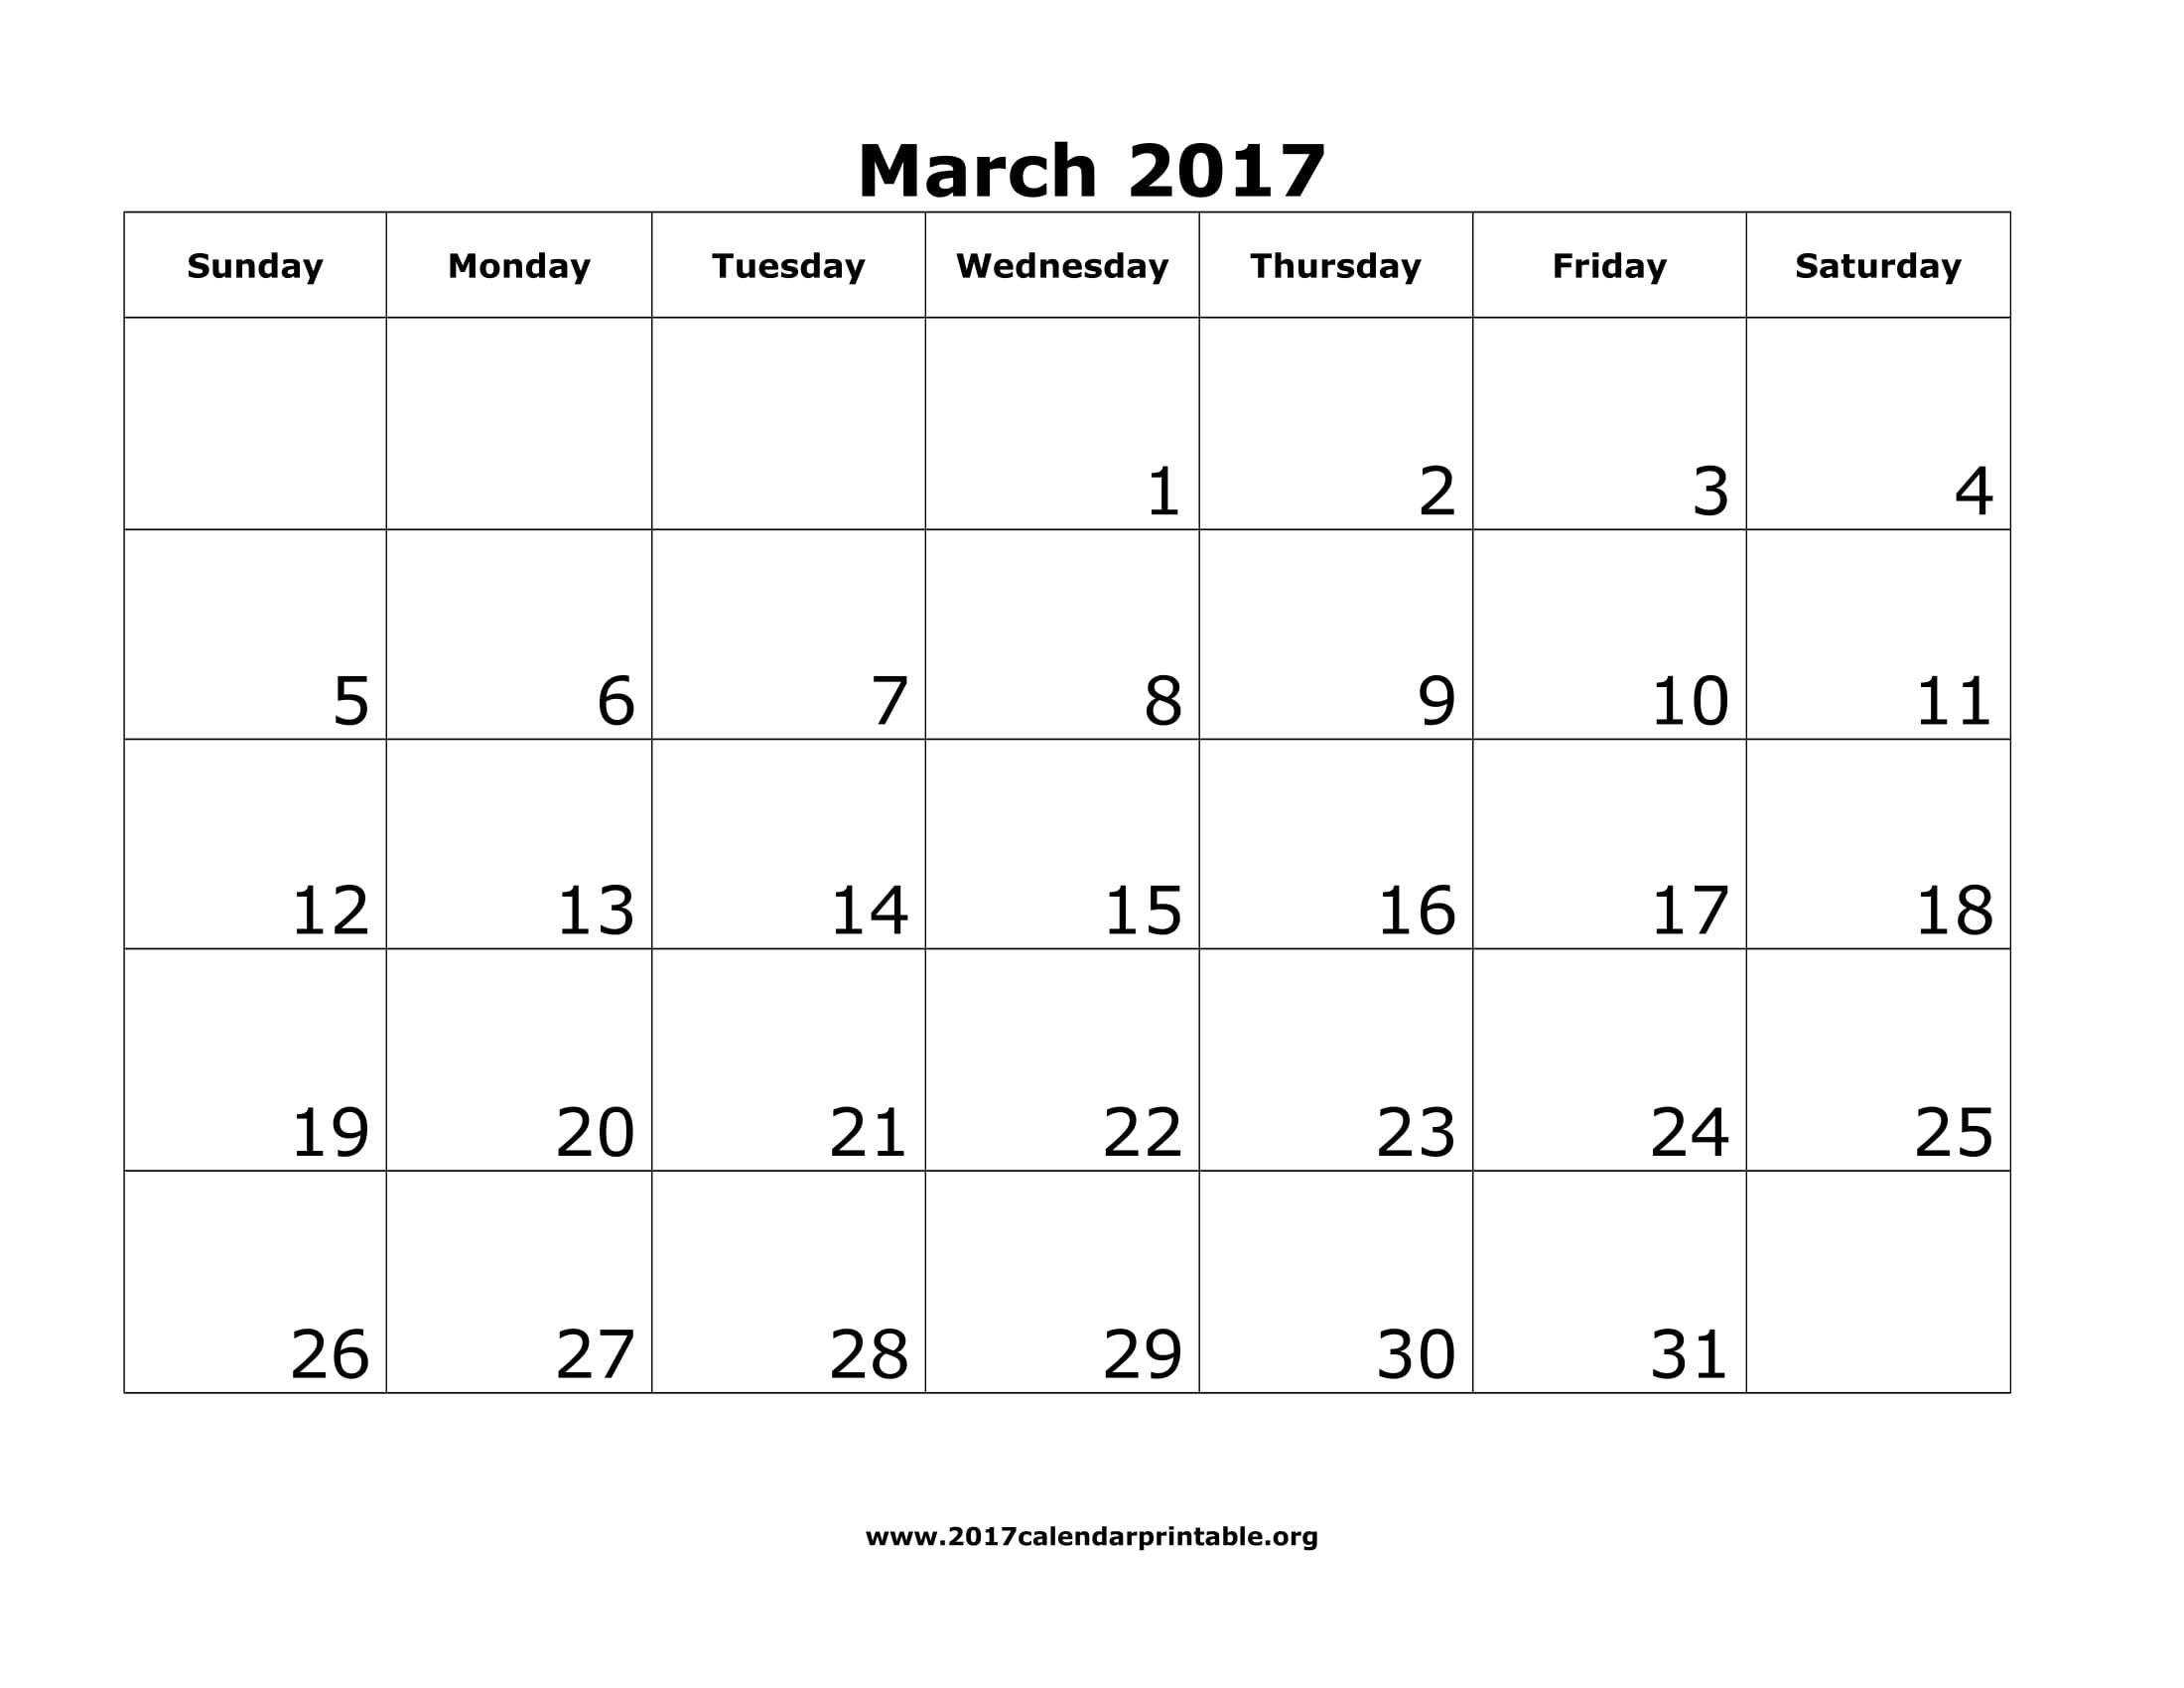 Download March 2017 Calendar Printable with federal holidays and ...